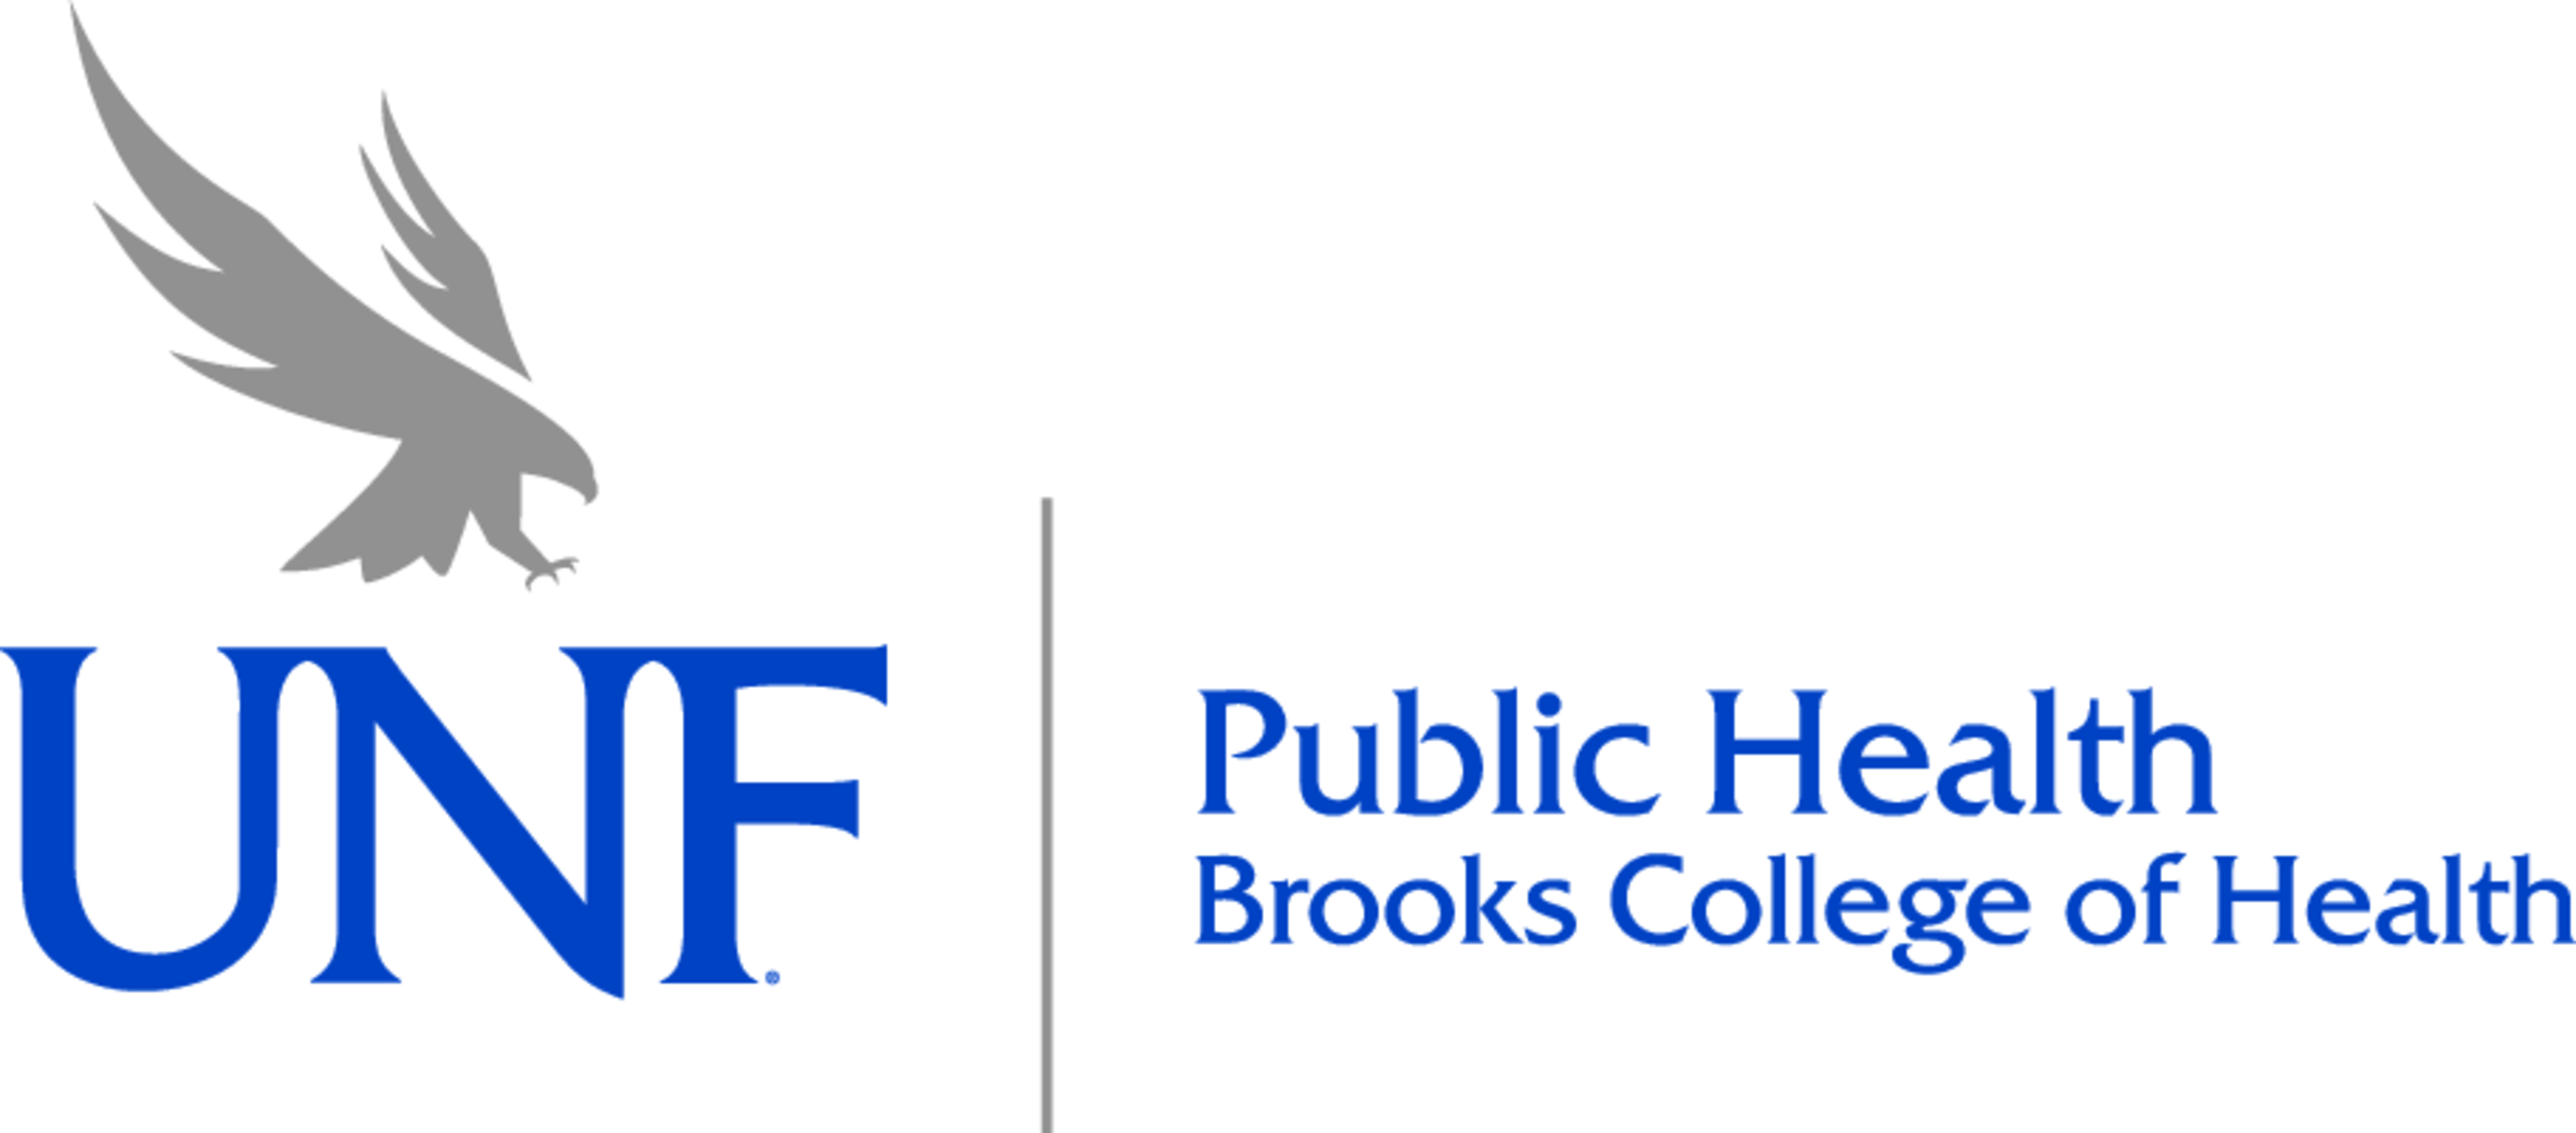 UNF Public Health Logo in Blue and Gray